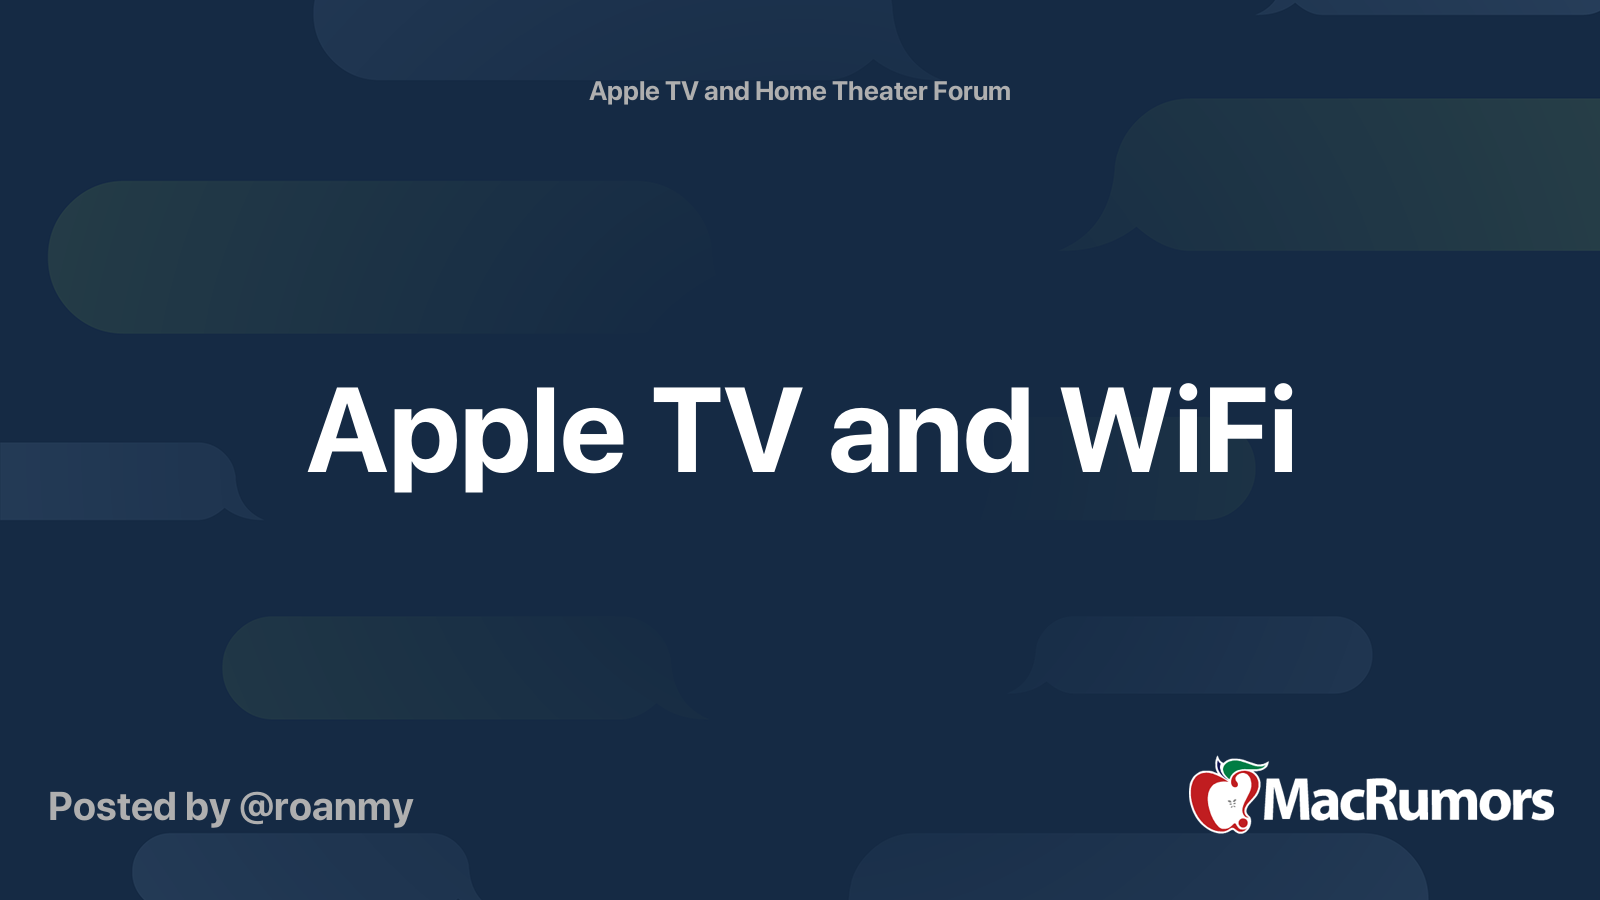 Apple TV and WiFi